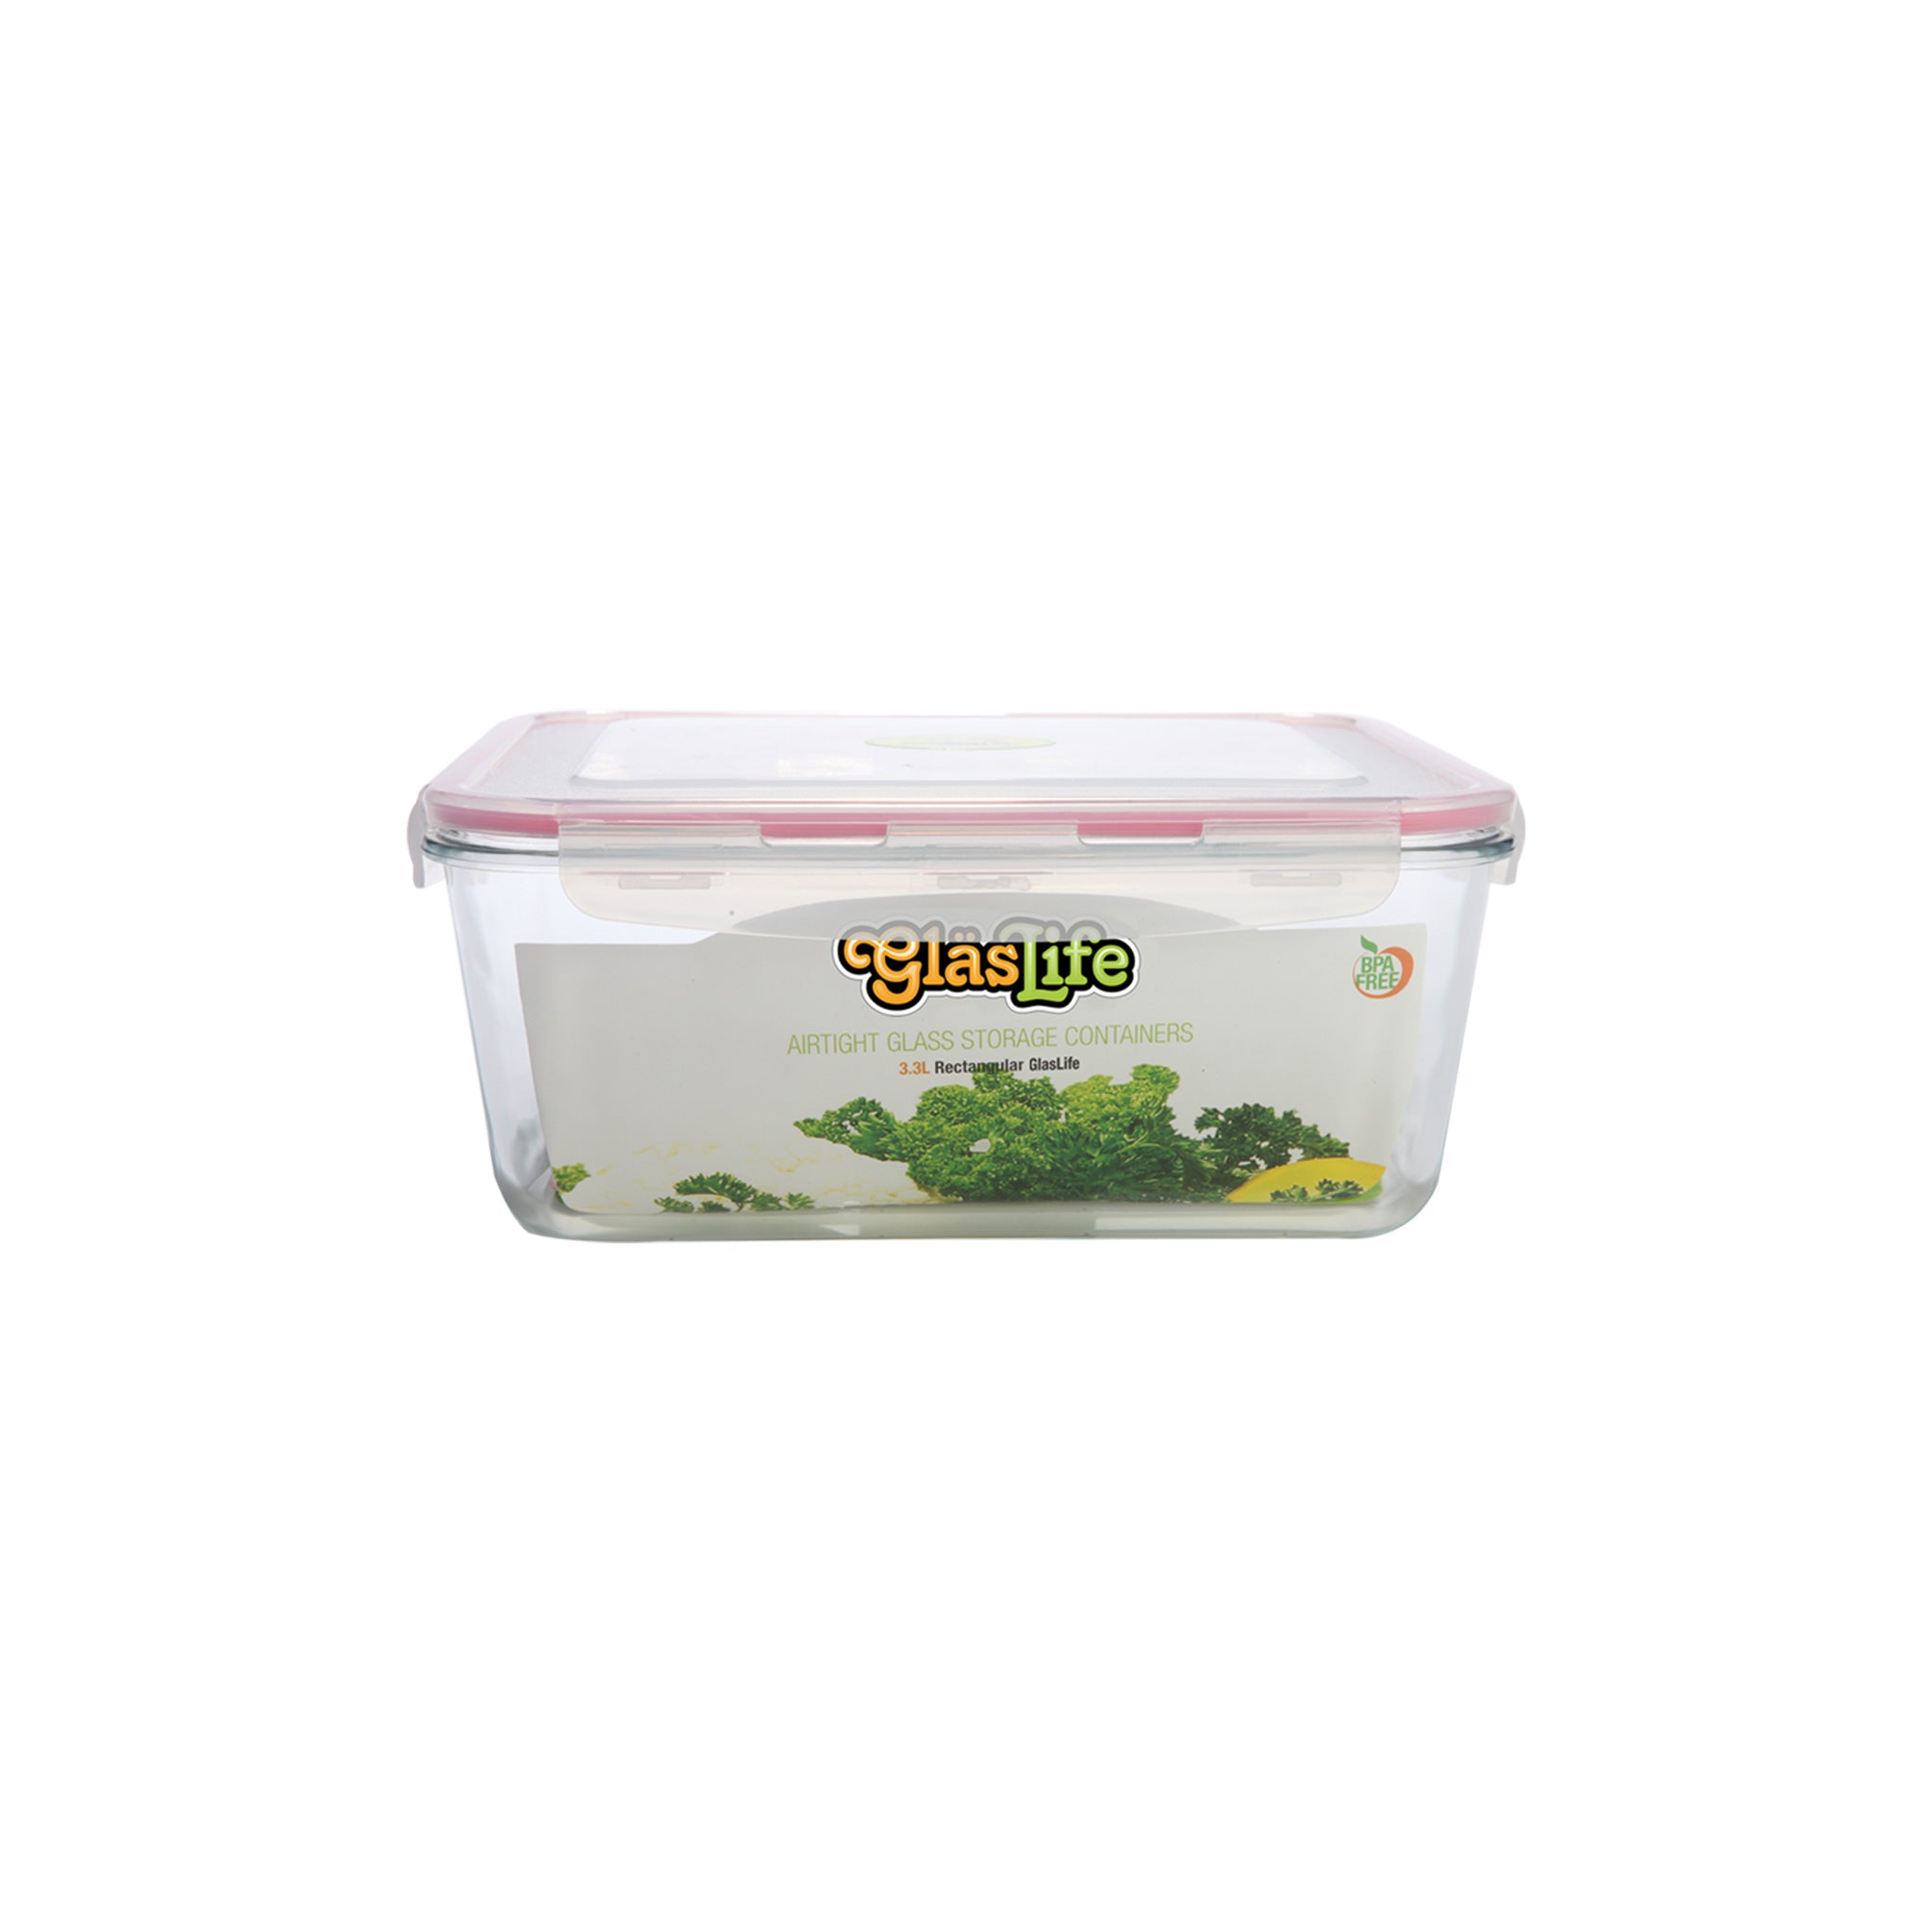 GlasLife® Air-Tight Glass Storage Container - Rectangular GLR045 Small 15 oz / 0.45 L